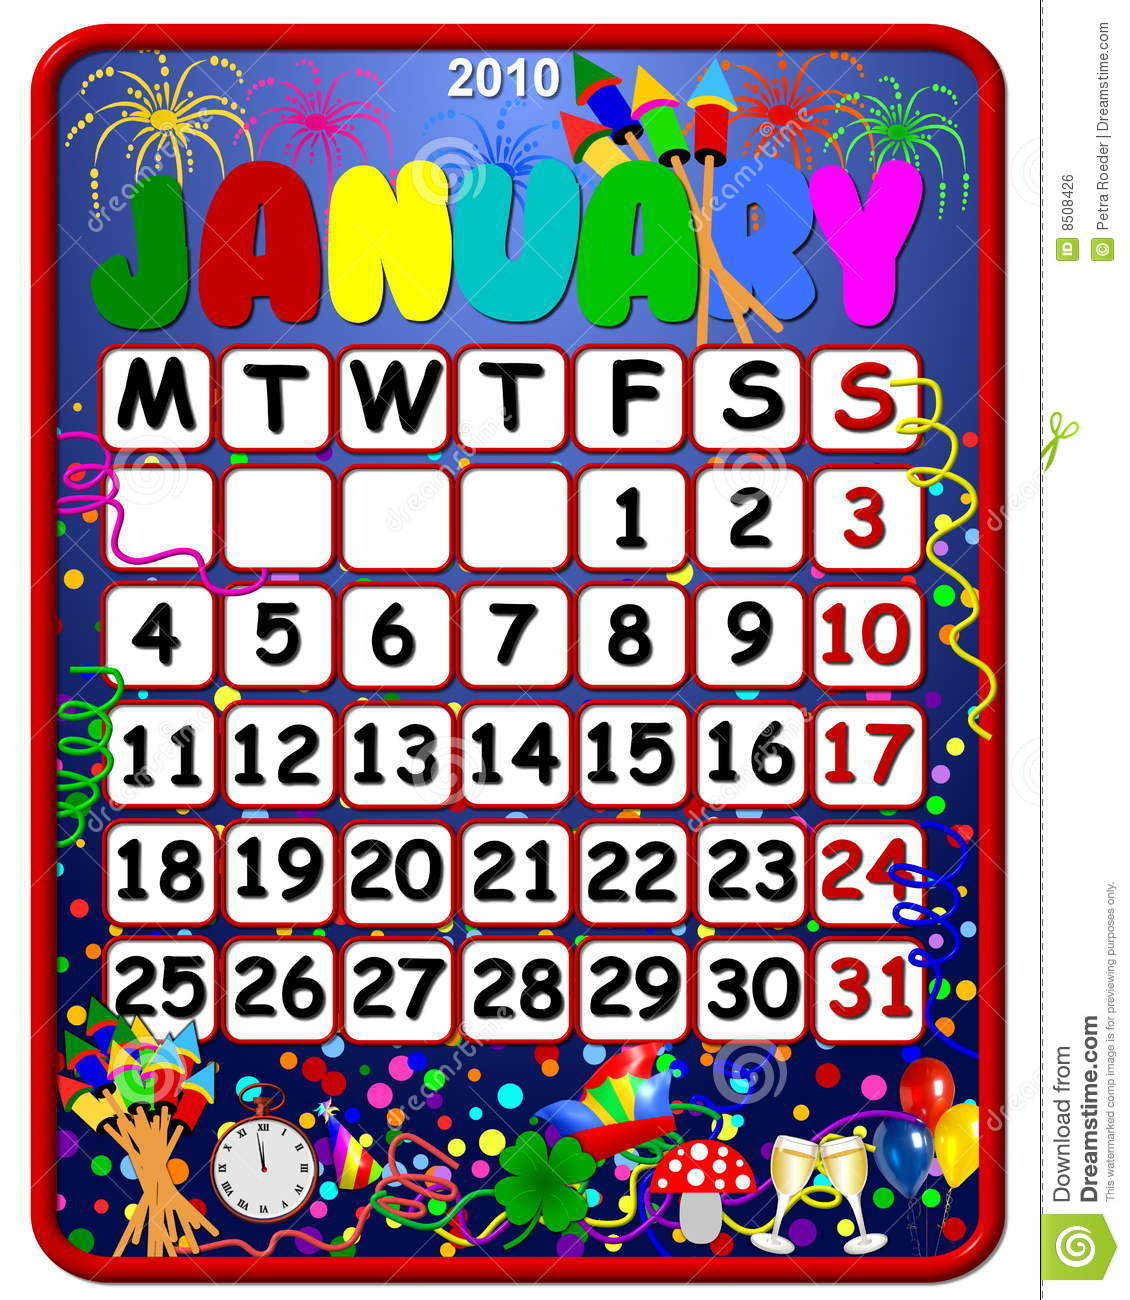 calendar 2010 with holidays free download